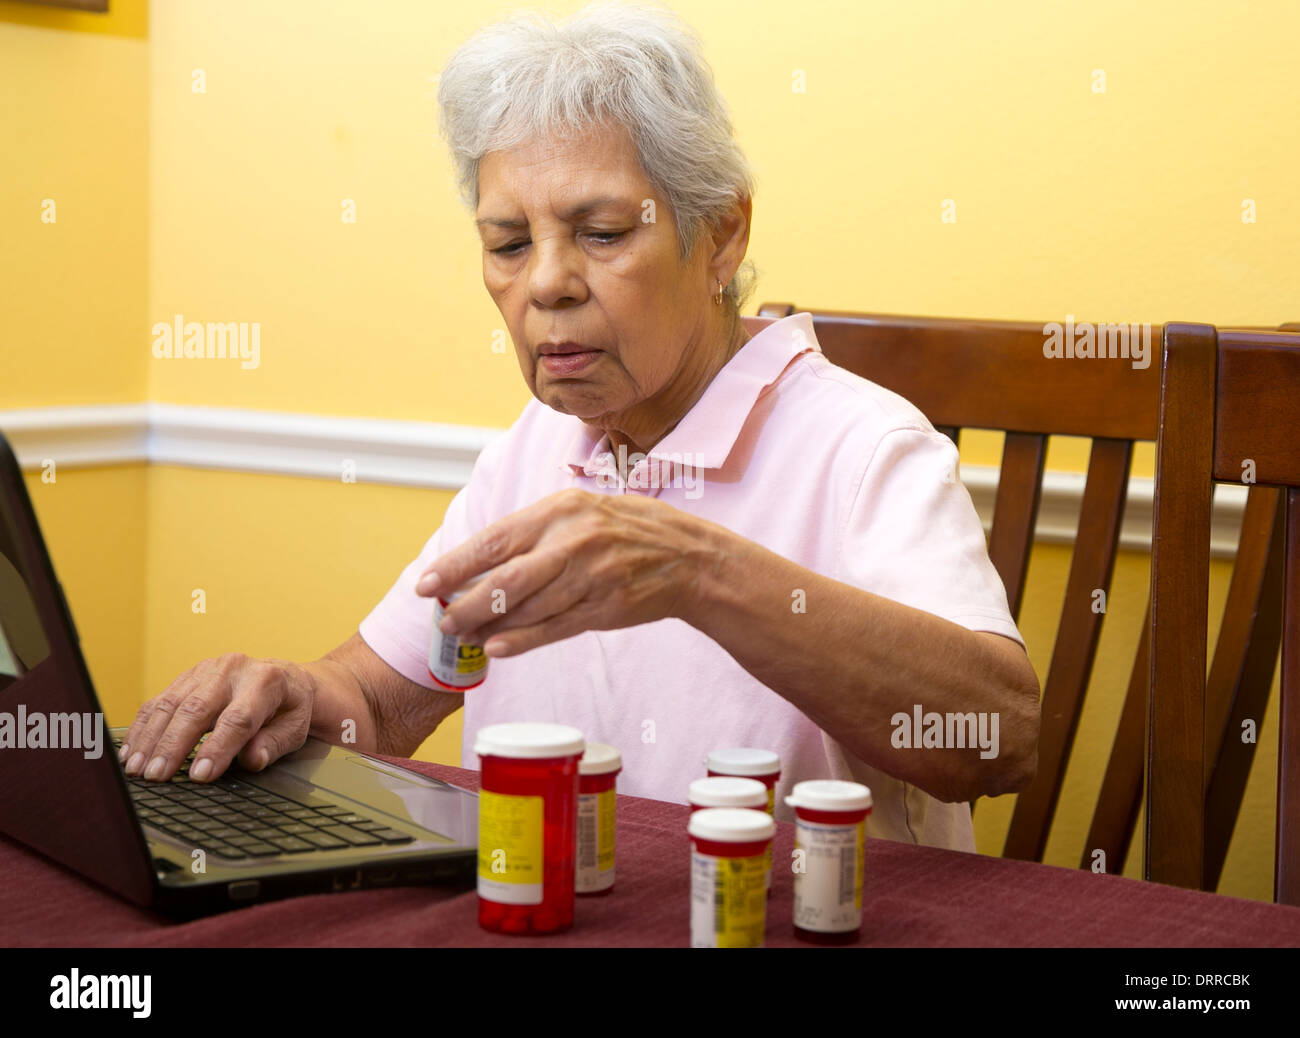 computer use in pharmacy